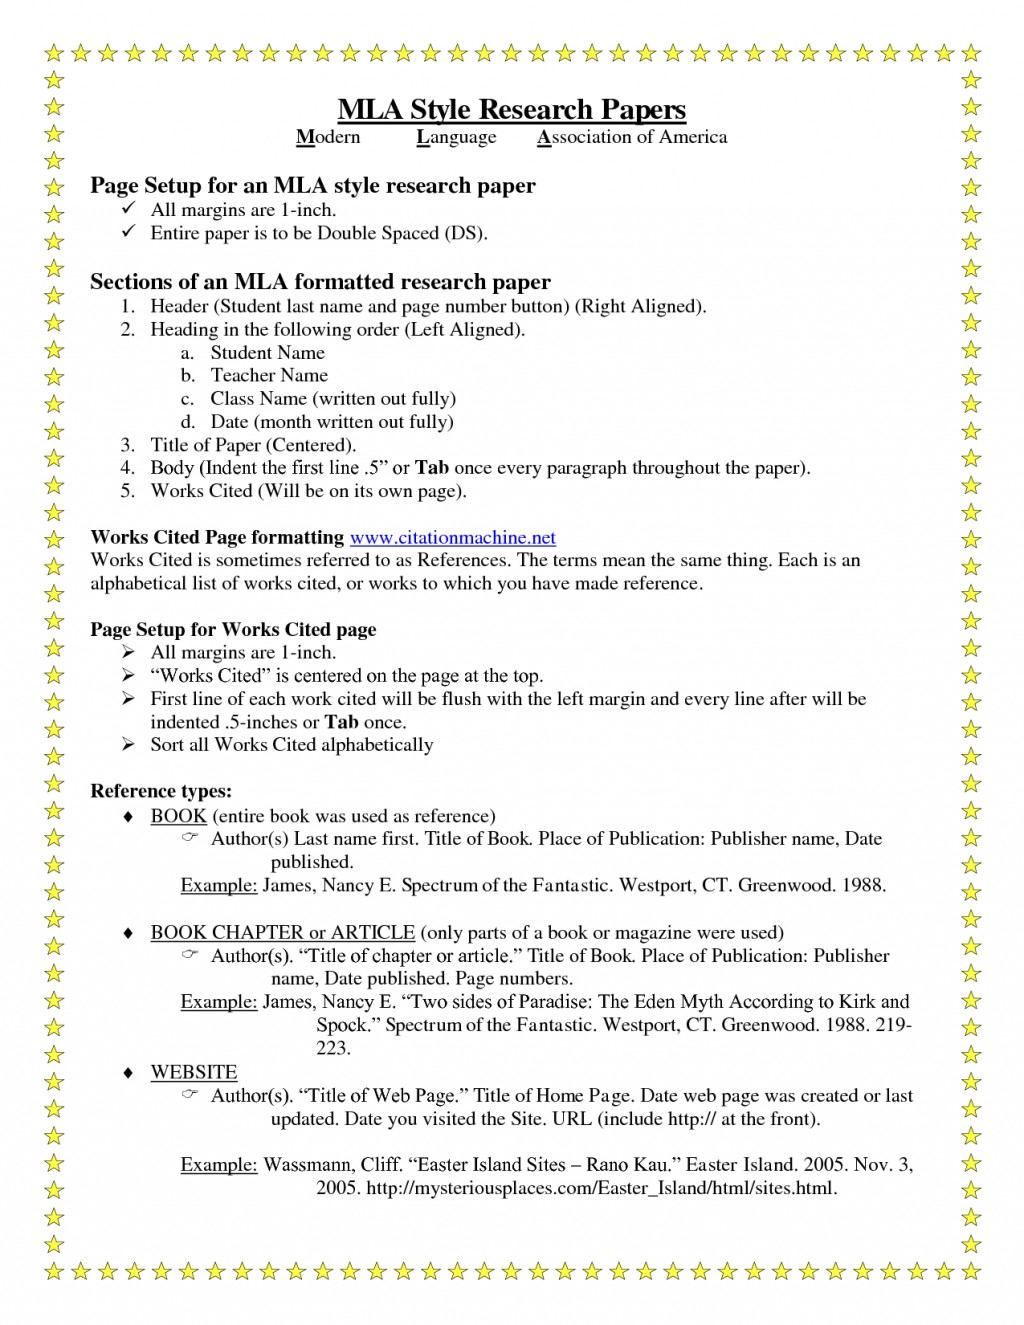 004 Research Paper Mla Format Section Headings Breathtaking Heading Spacing Large